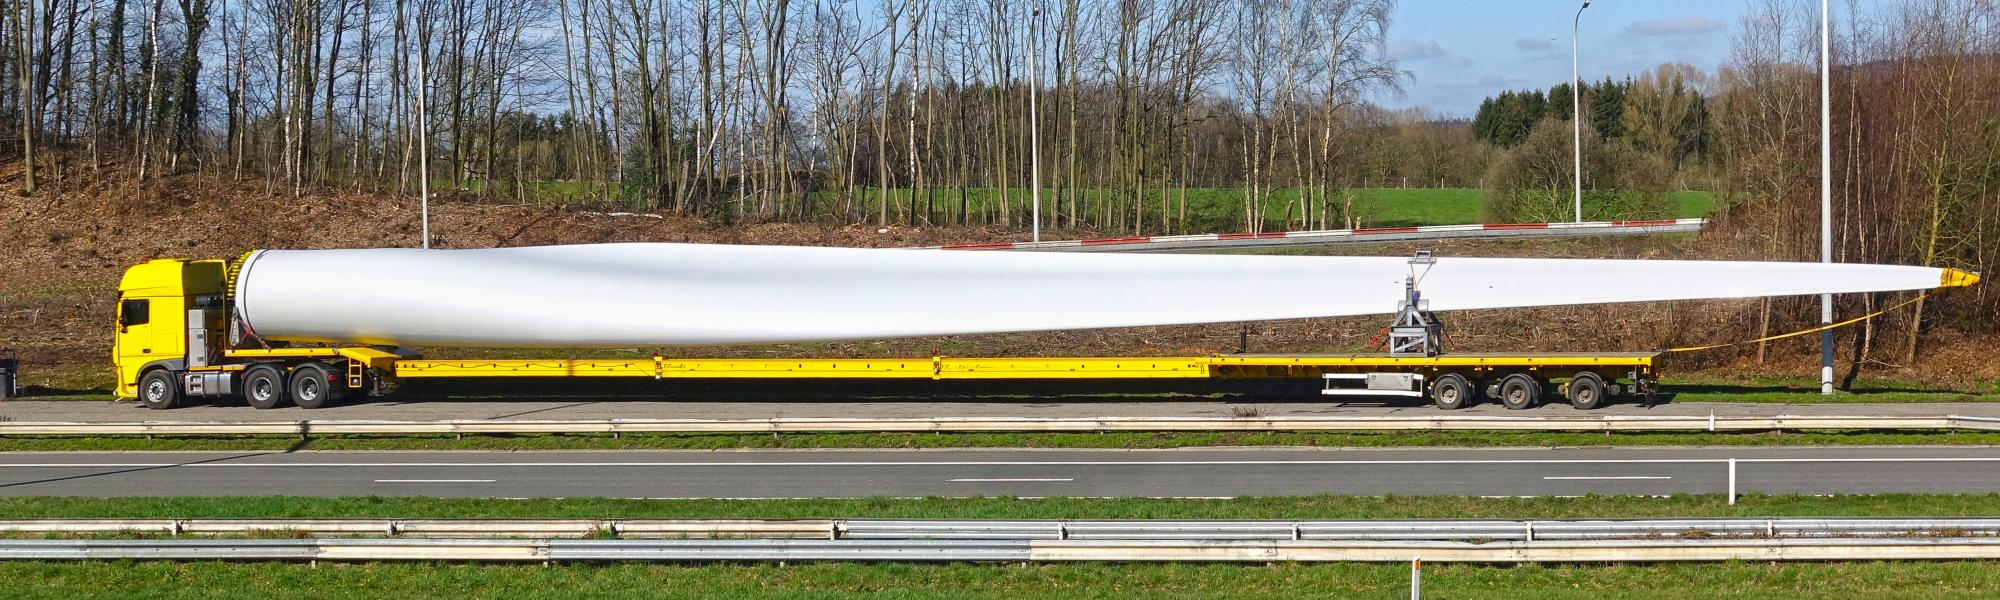 Truck transporting rotor blade fro wind power plant